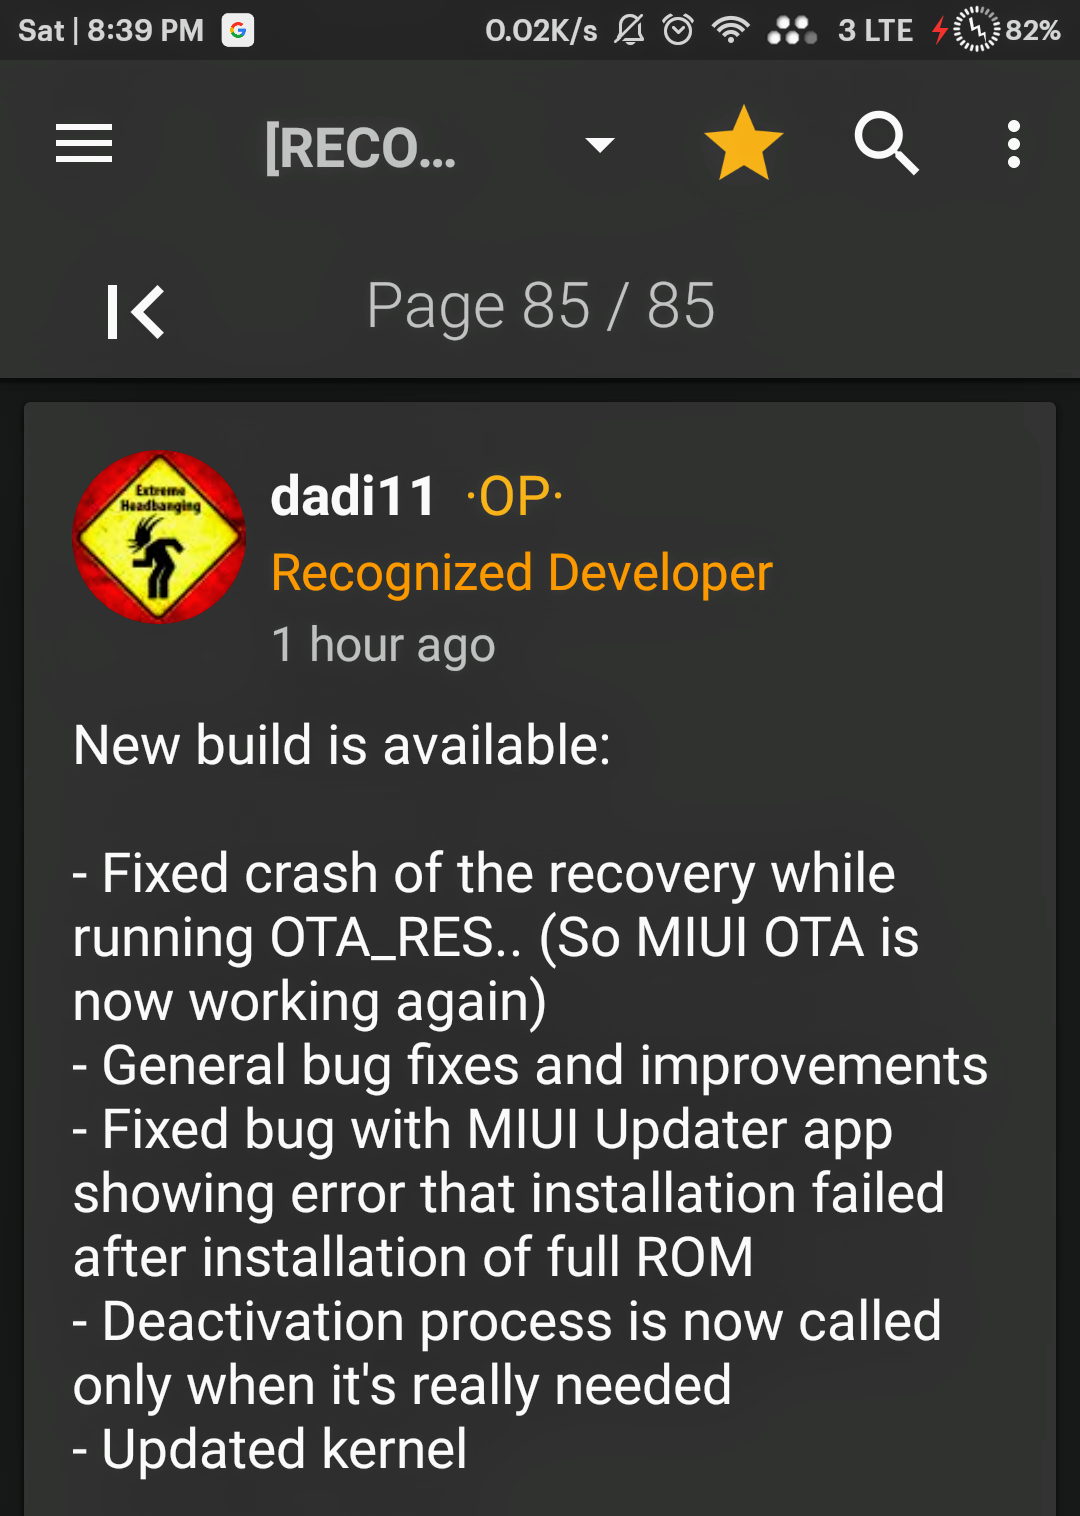 Mi Update: Red Wolf Recovery Version 3 2 1 Build 025/026